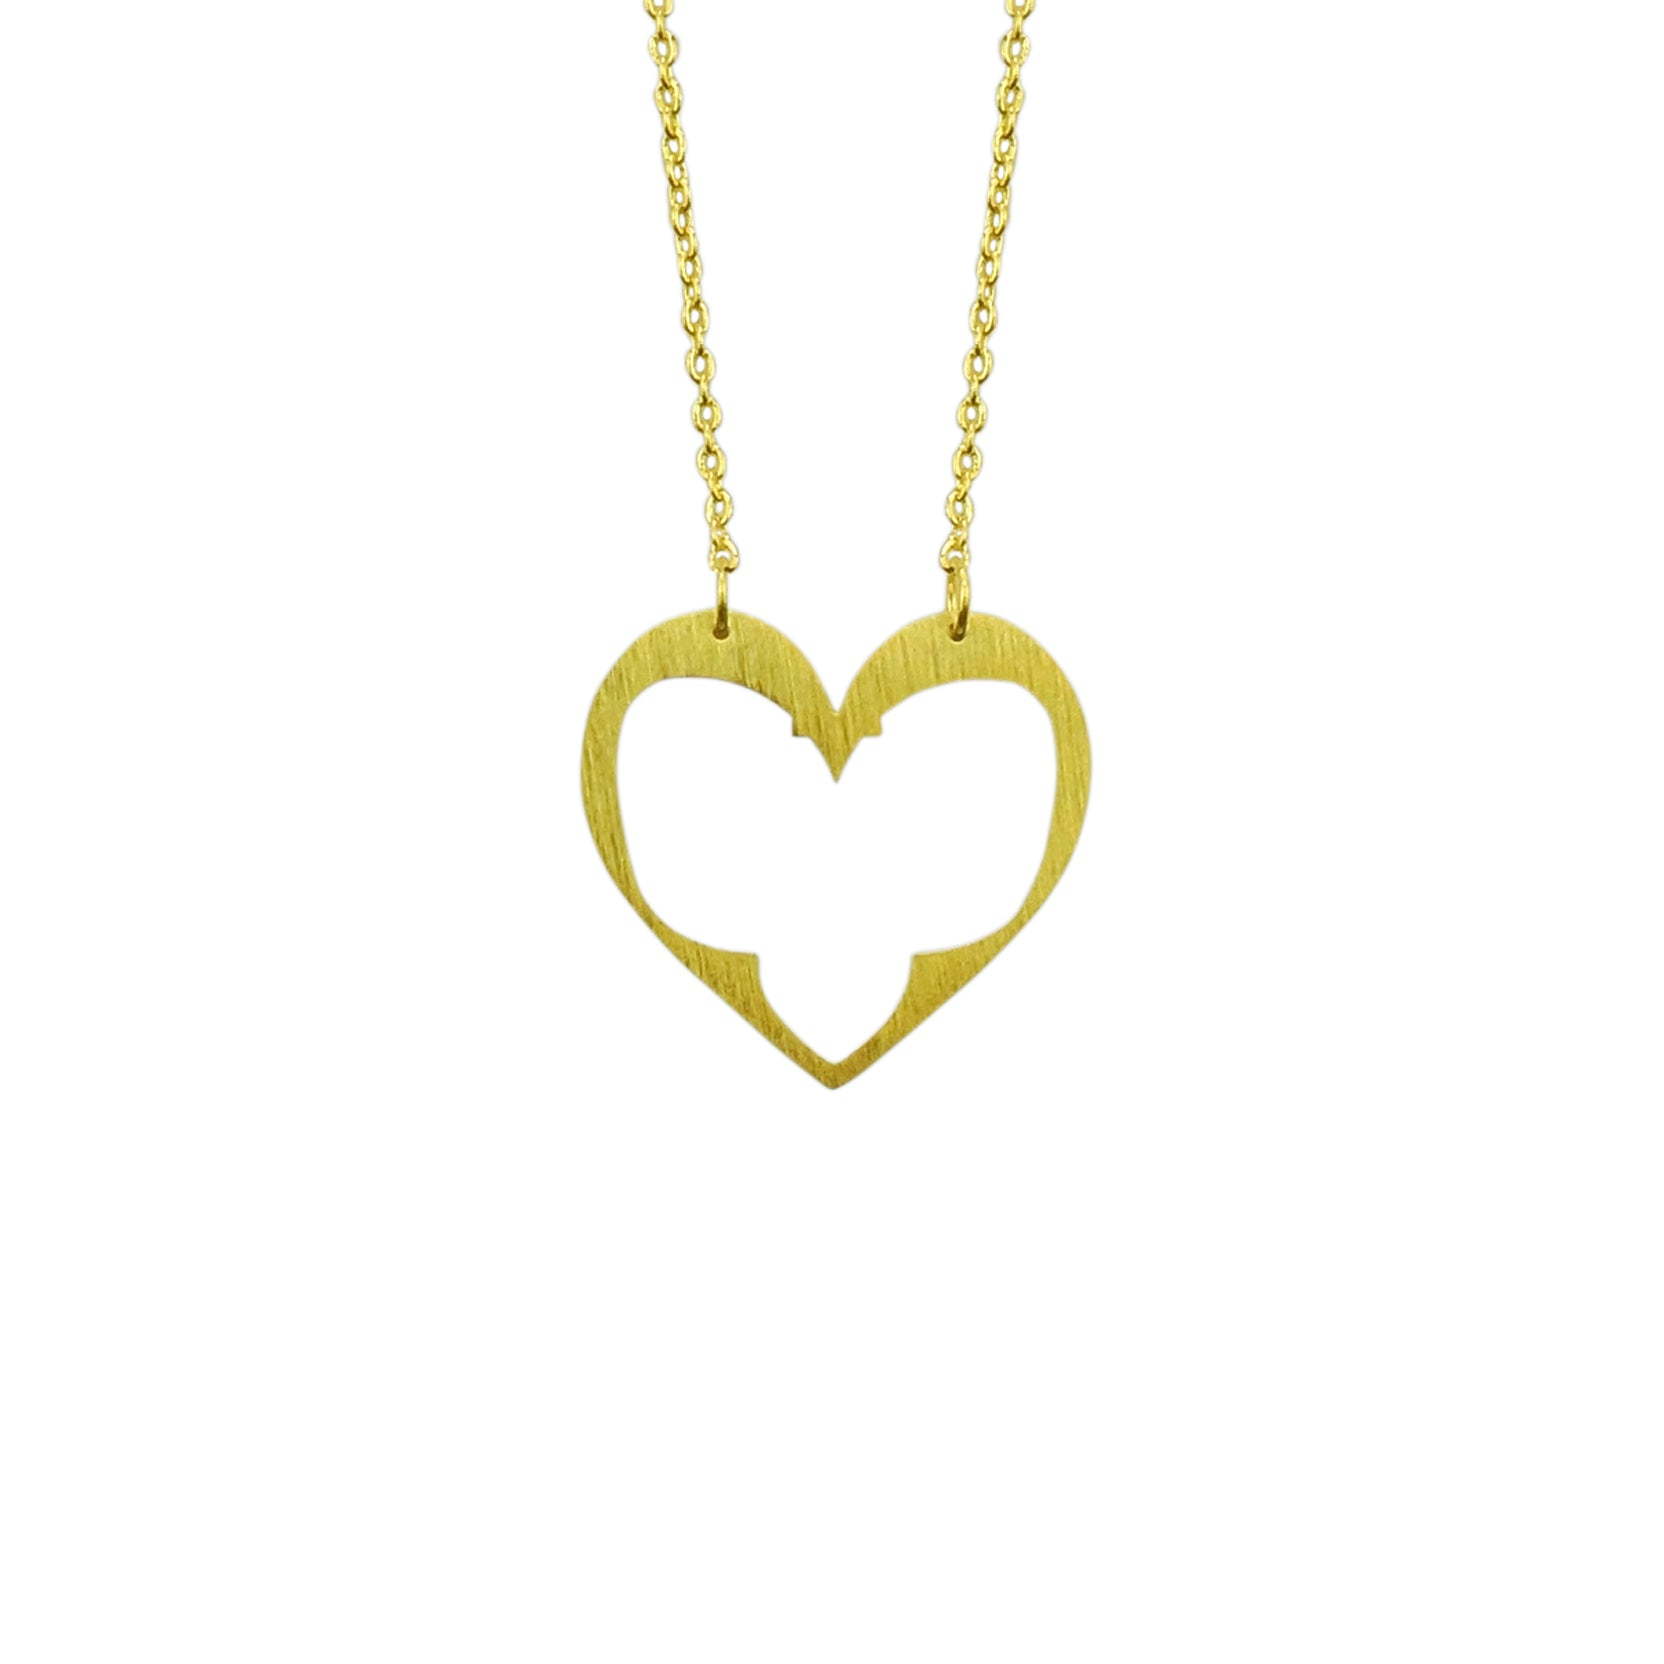 Organic Heart Necklace